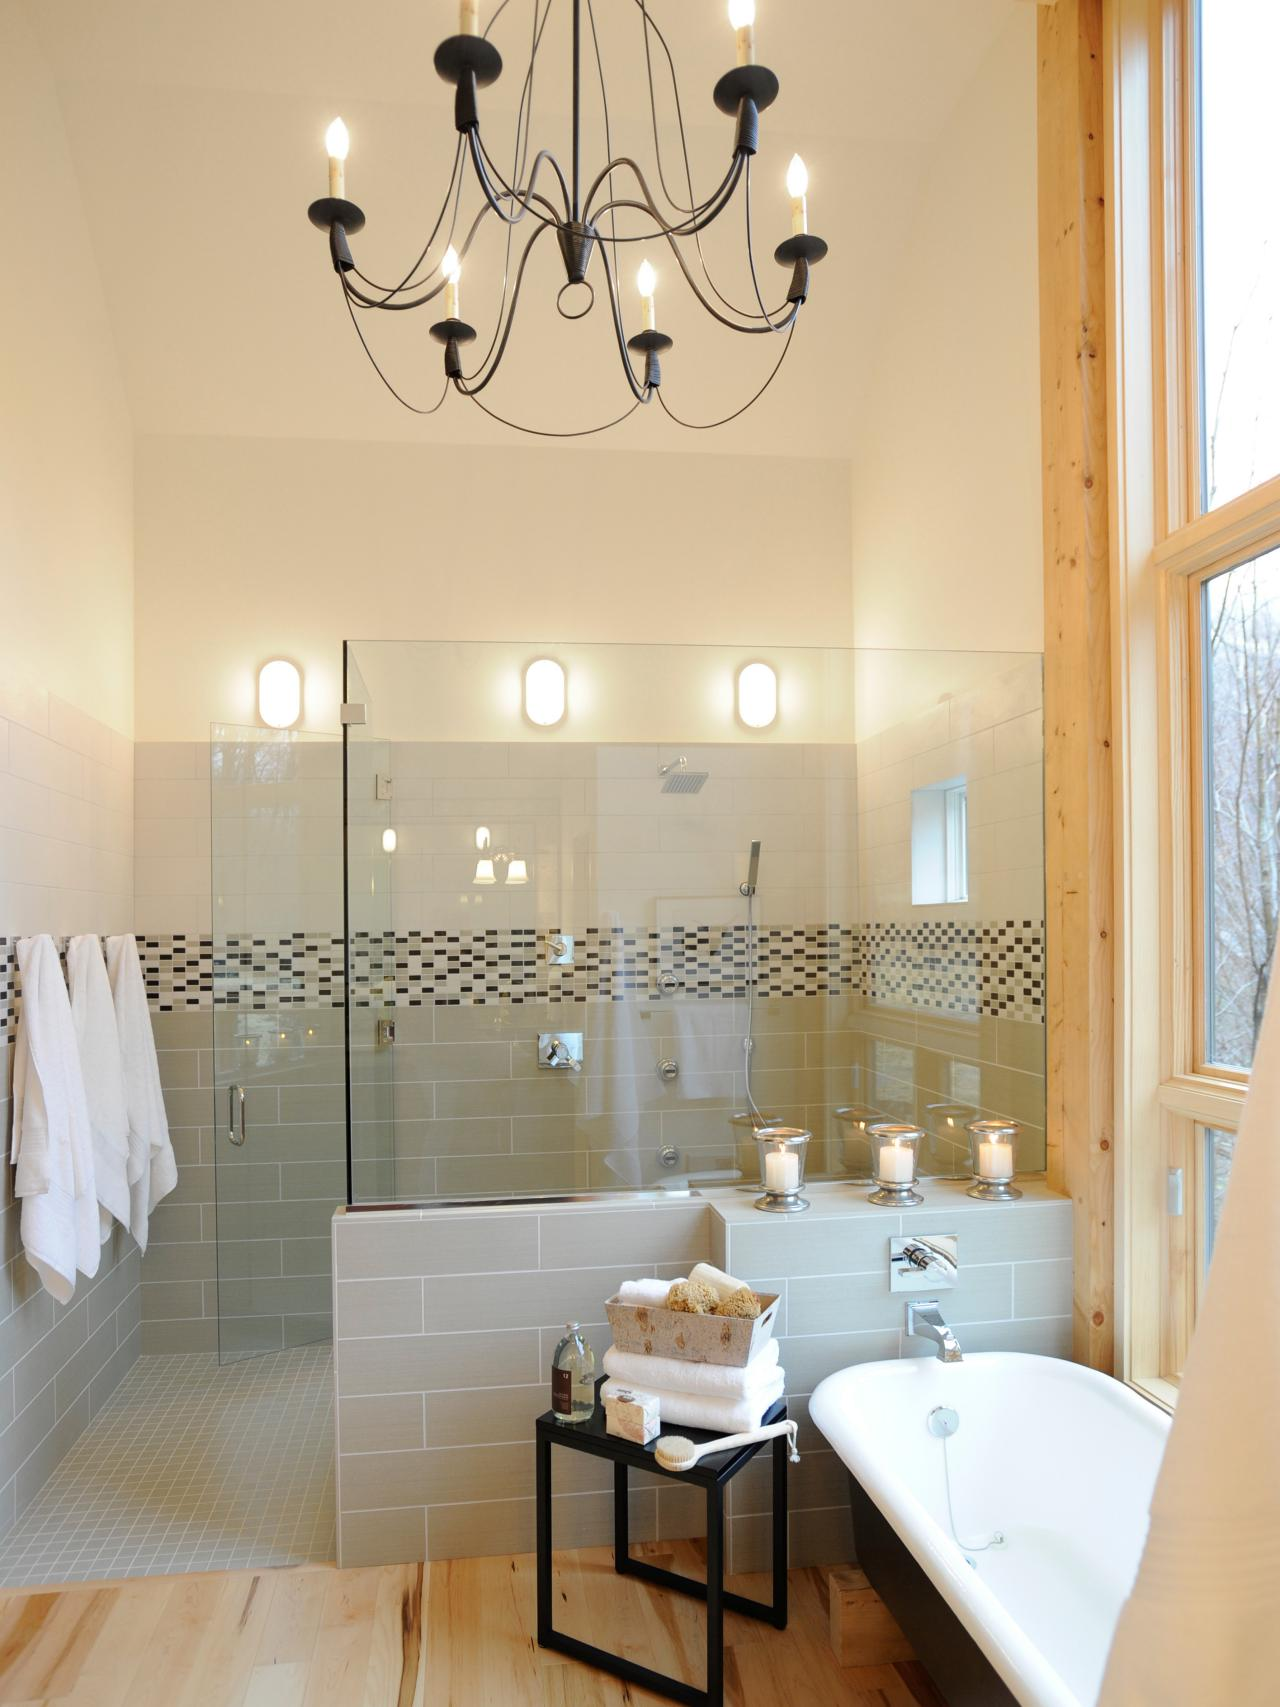 Bathroom Chandelier Lighting 20 Luxurious Bathrooms With Elegant Chandelier Lighting